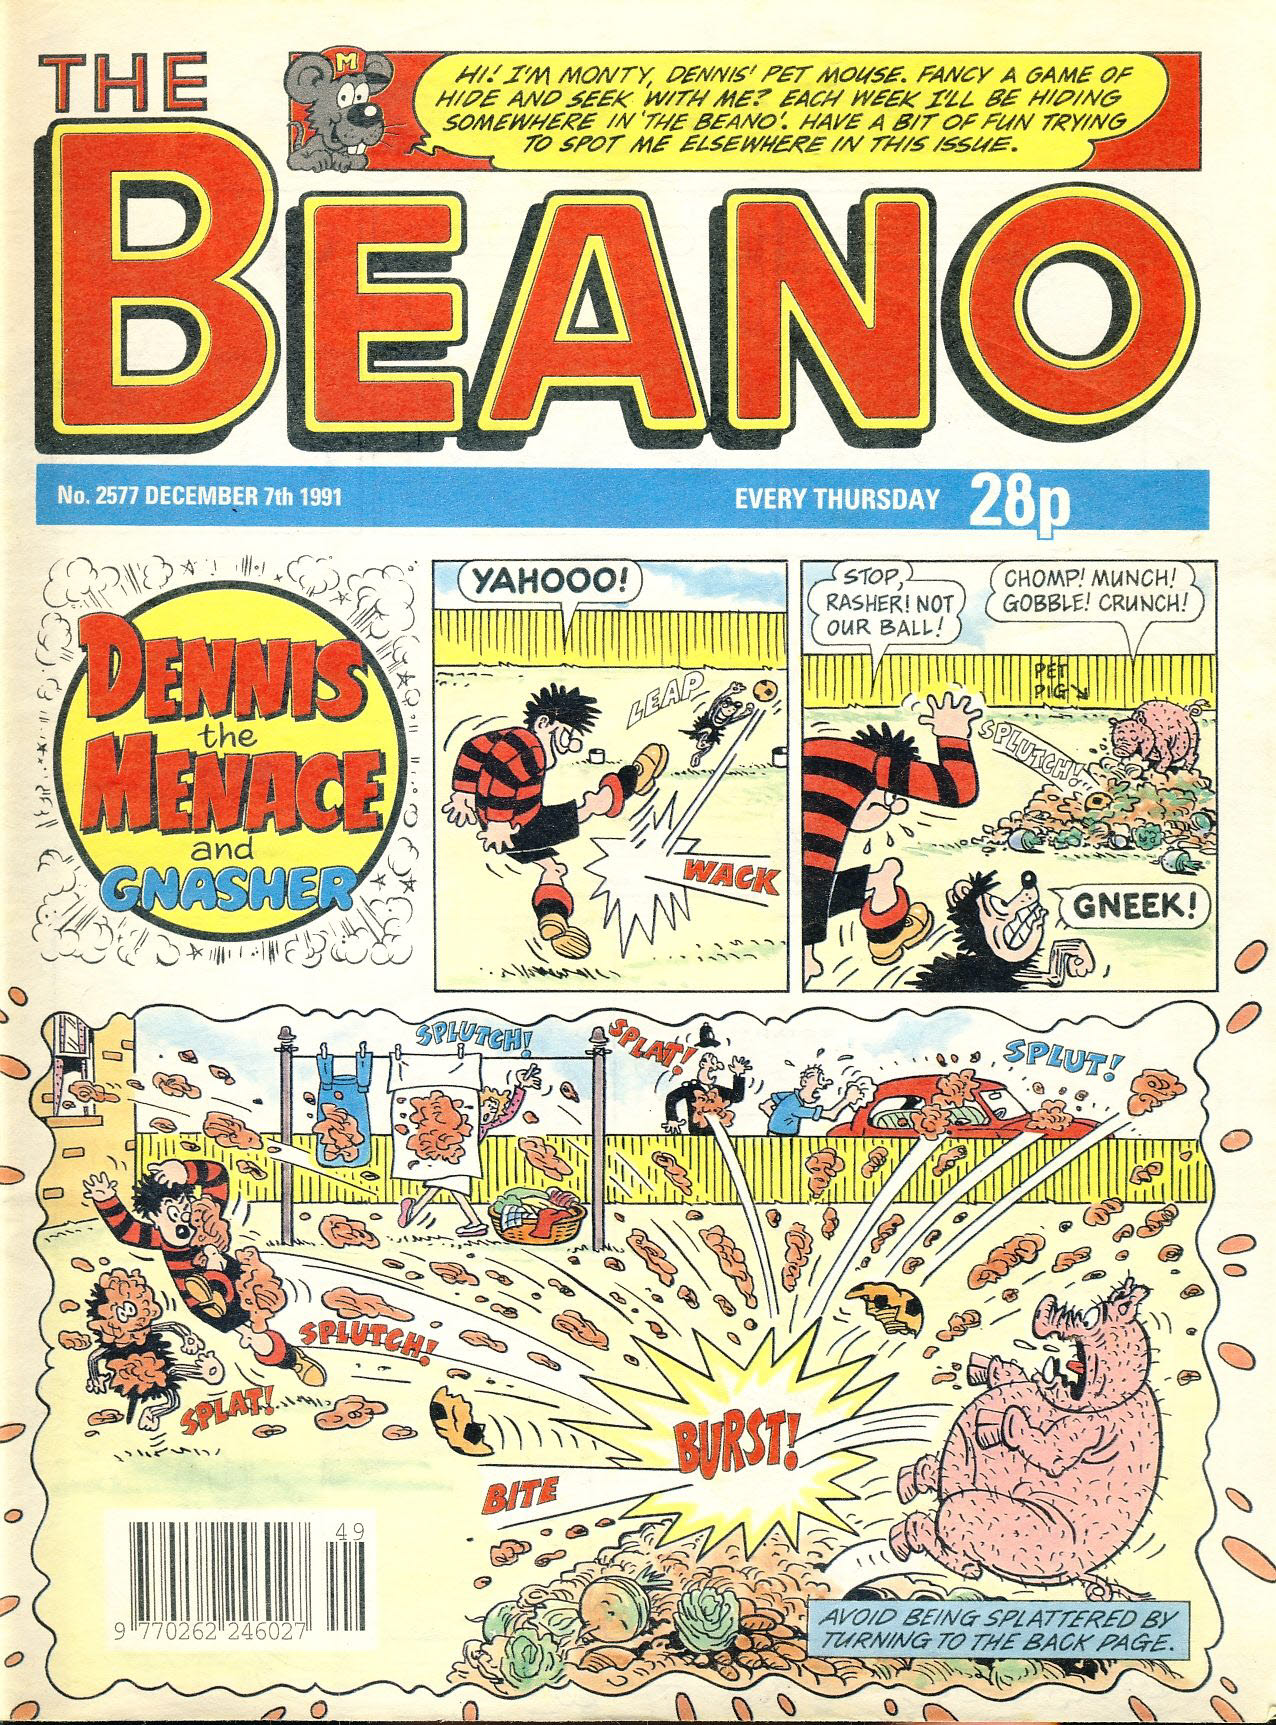 1991 December 7th BEANO vintage comic Good Gift Christmas Present Birthday Anniversary ref4 A vintage comic in good read condition. Please see larger photo and full description for details.